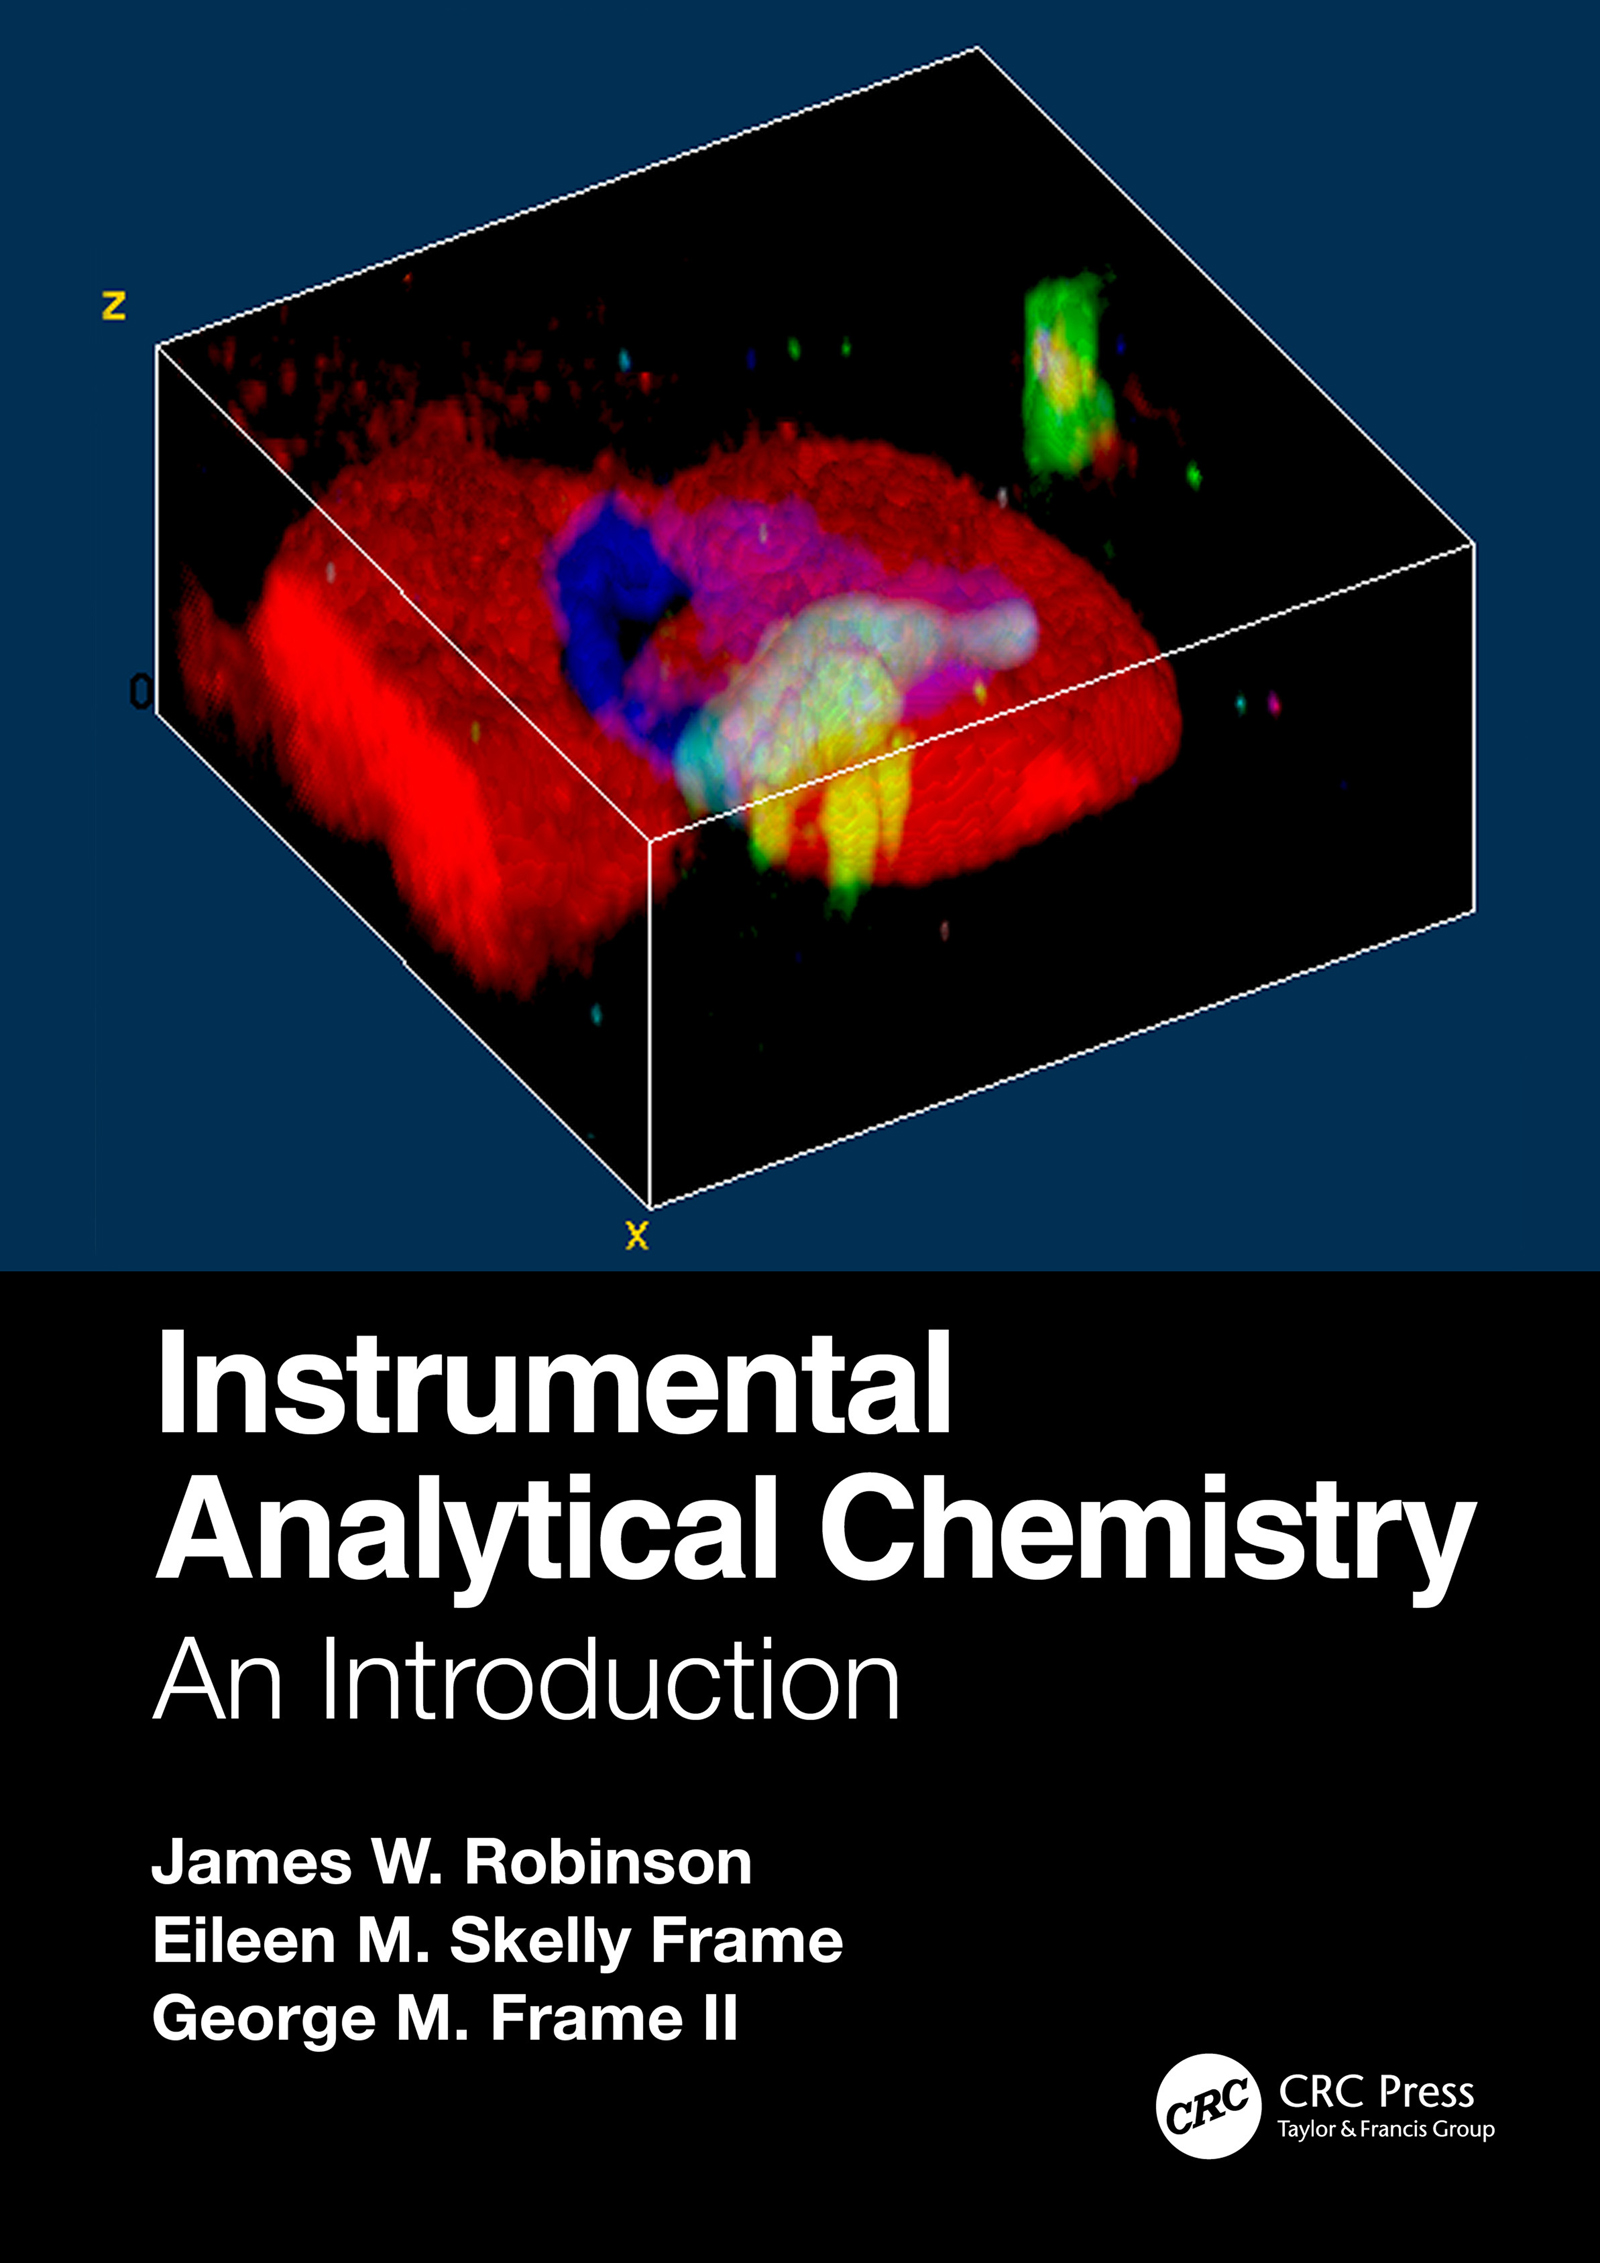 Concepts of Instrumental Analytical Chemistry